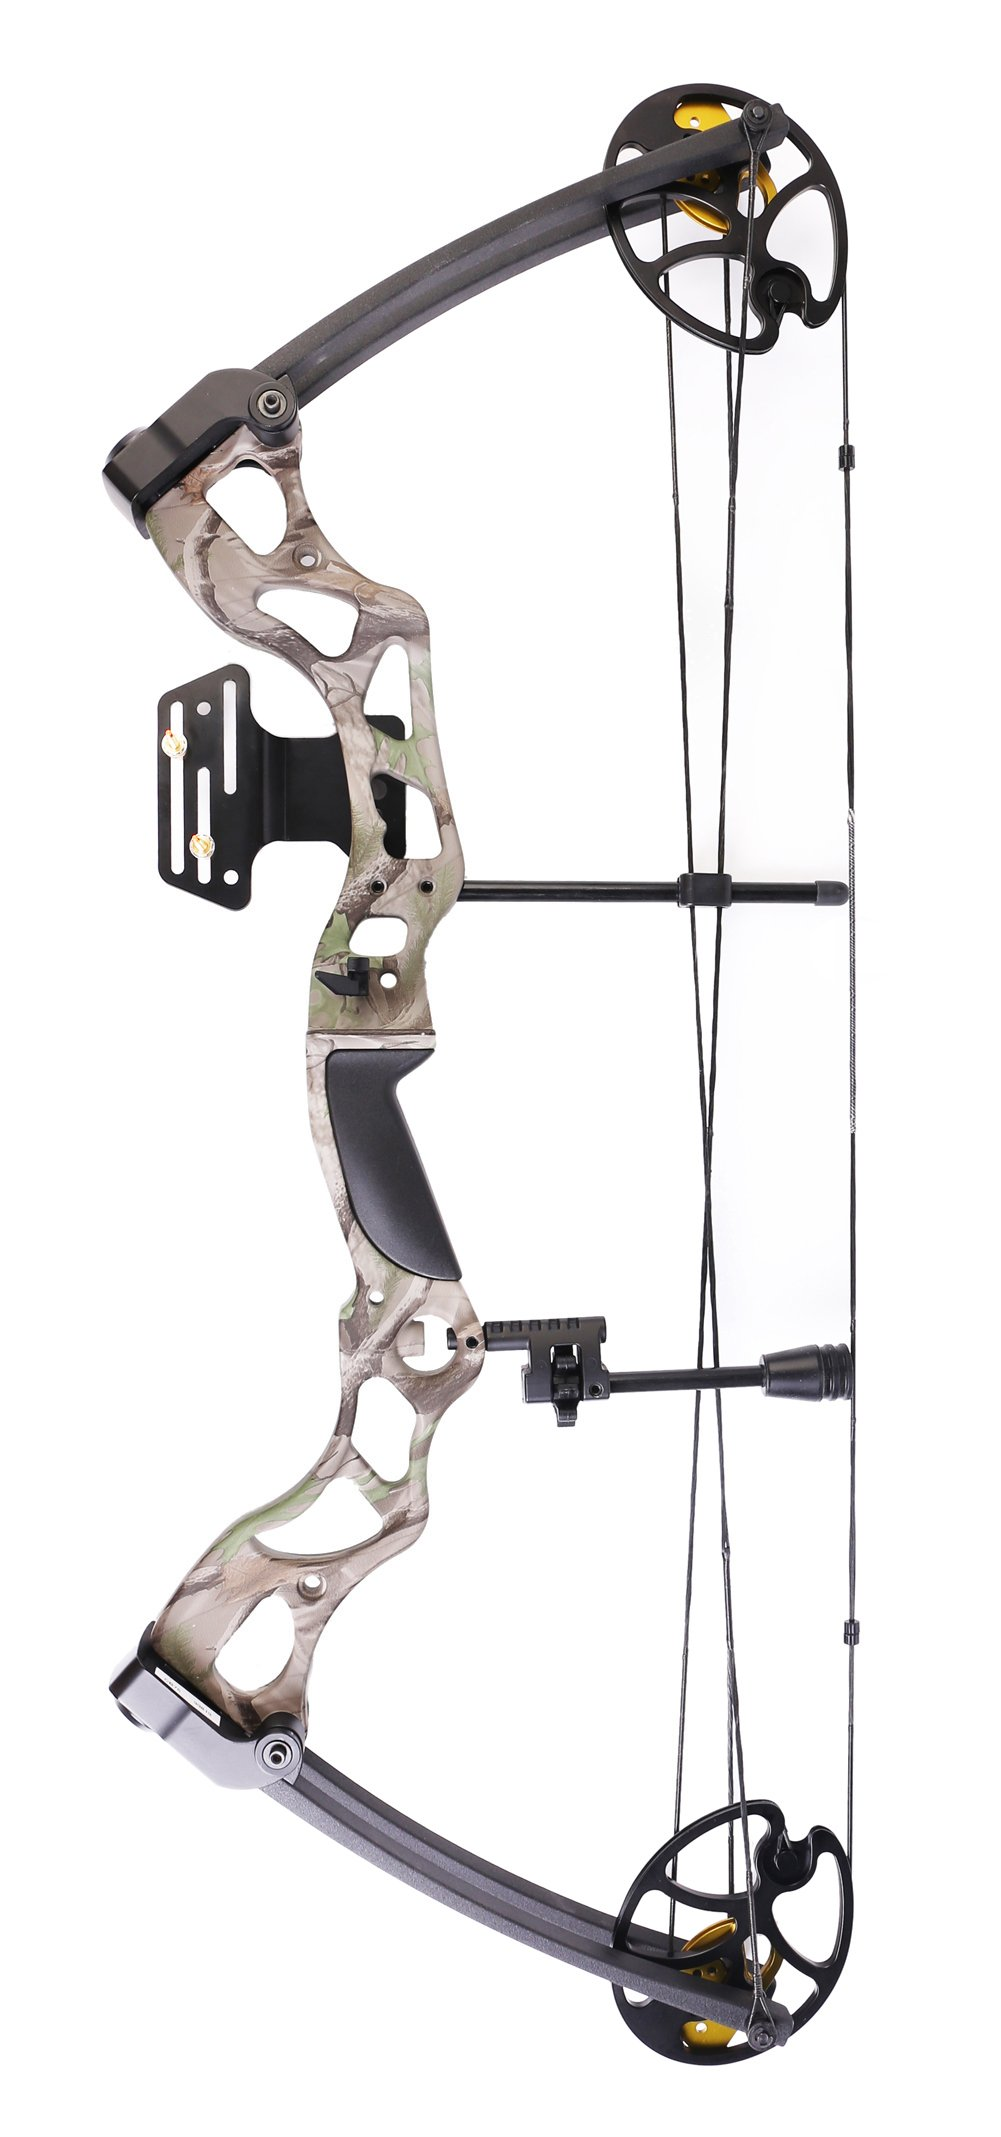 Leader Accessories Compound Bow Hunting Bow 50-70lbs with Max Speed 310fps (Green Camo)